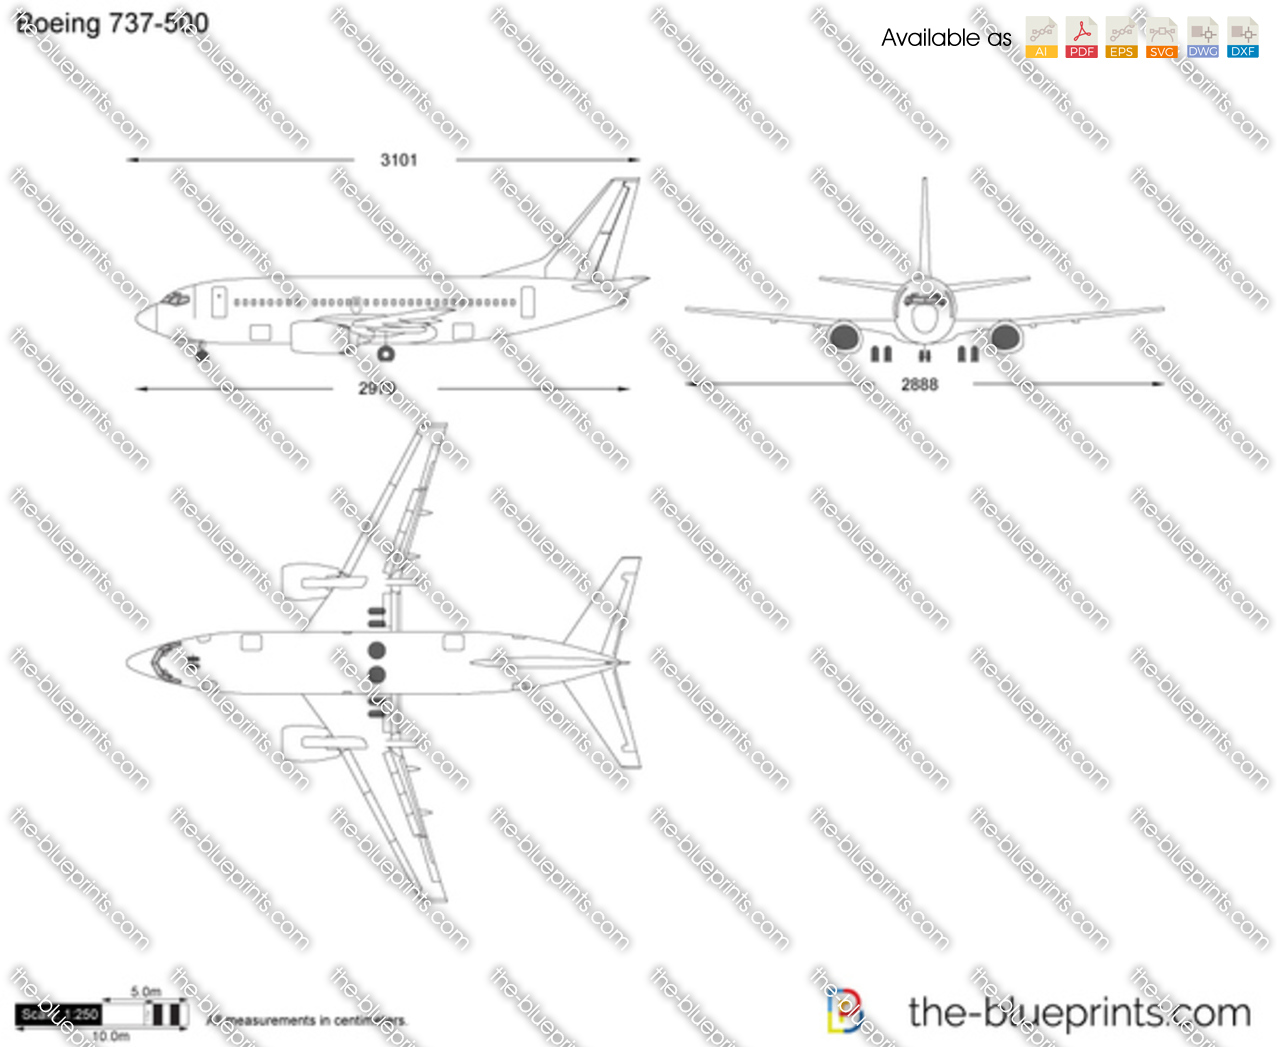 Boeing 737-500 vector drawing